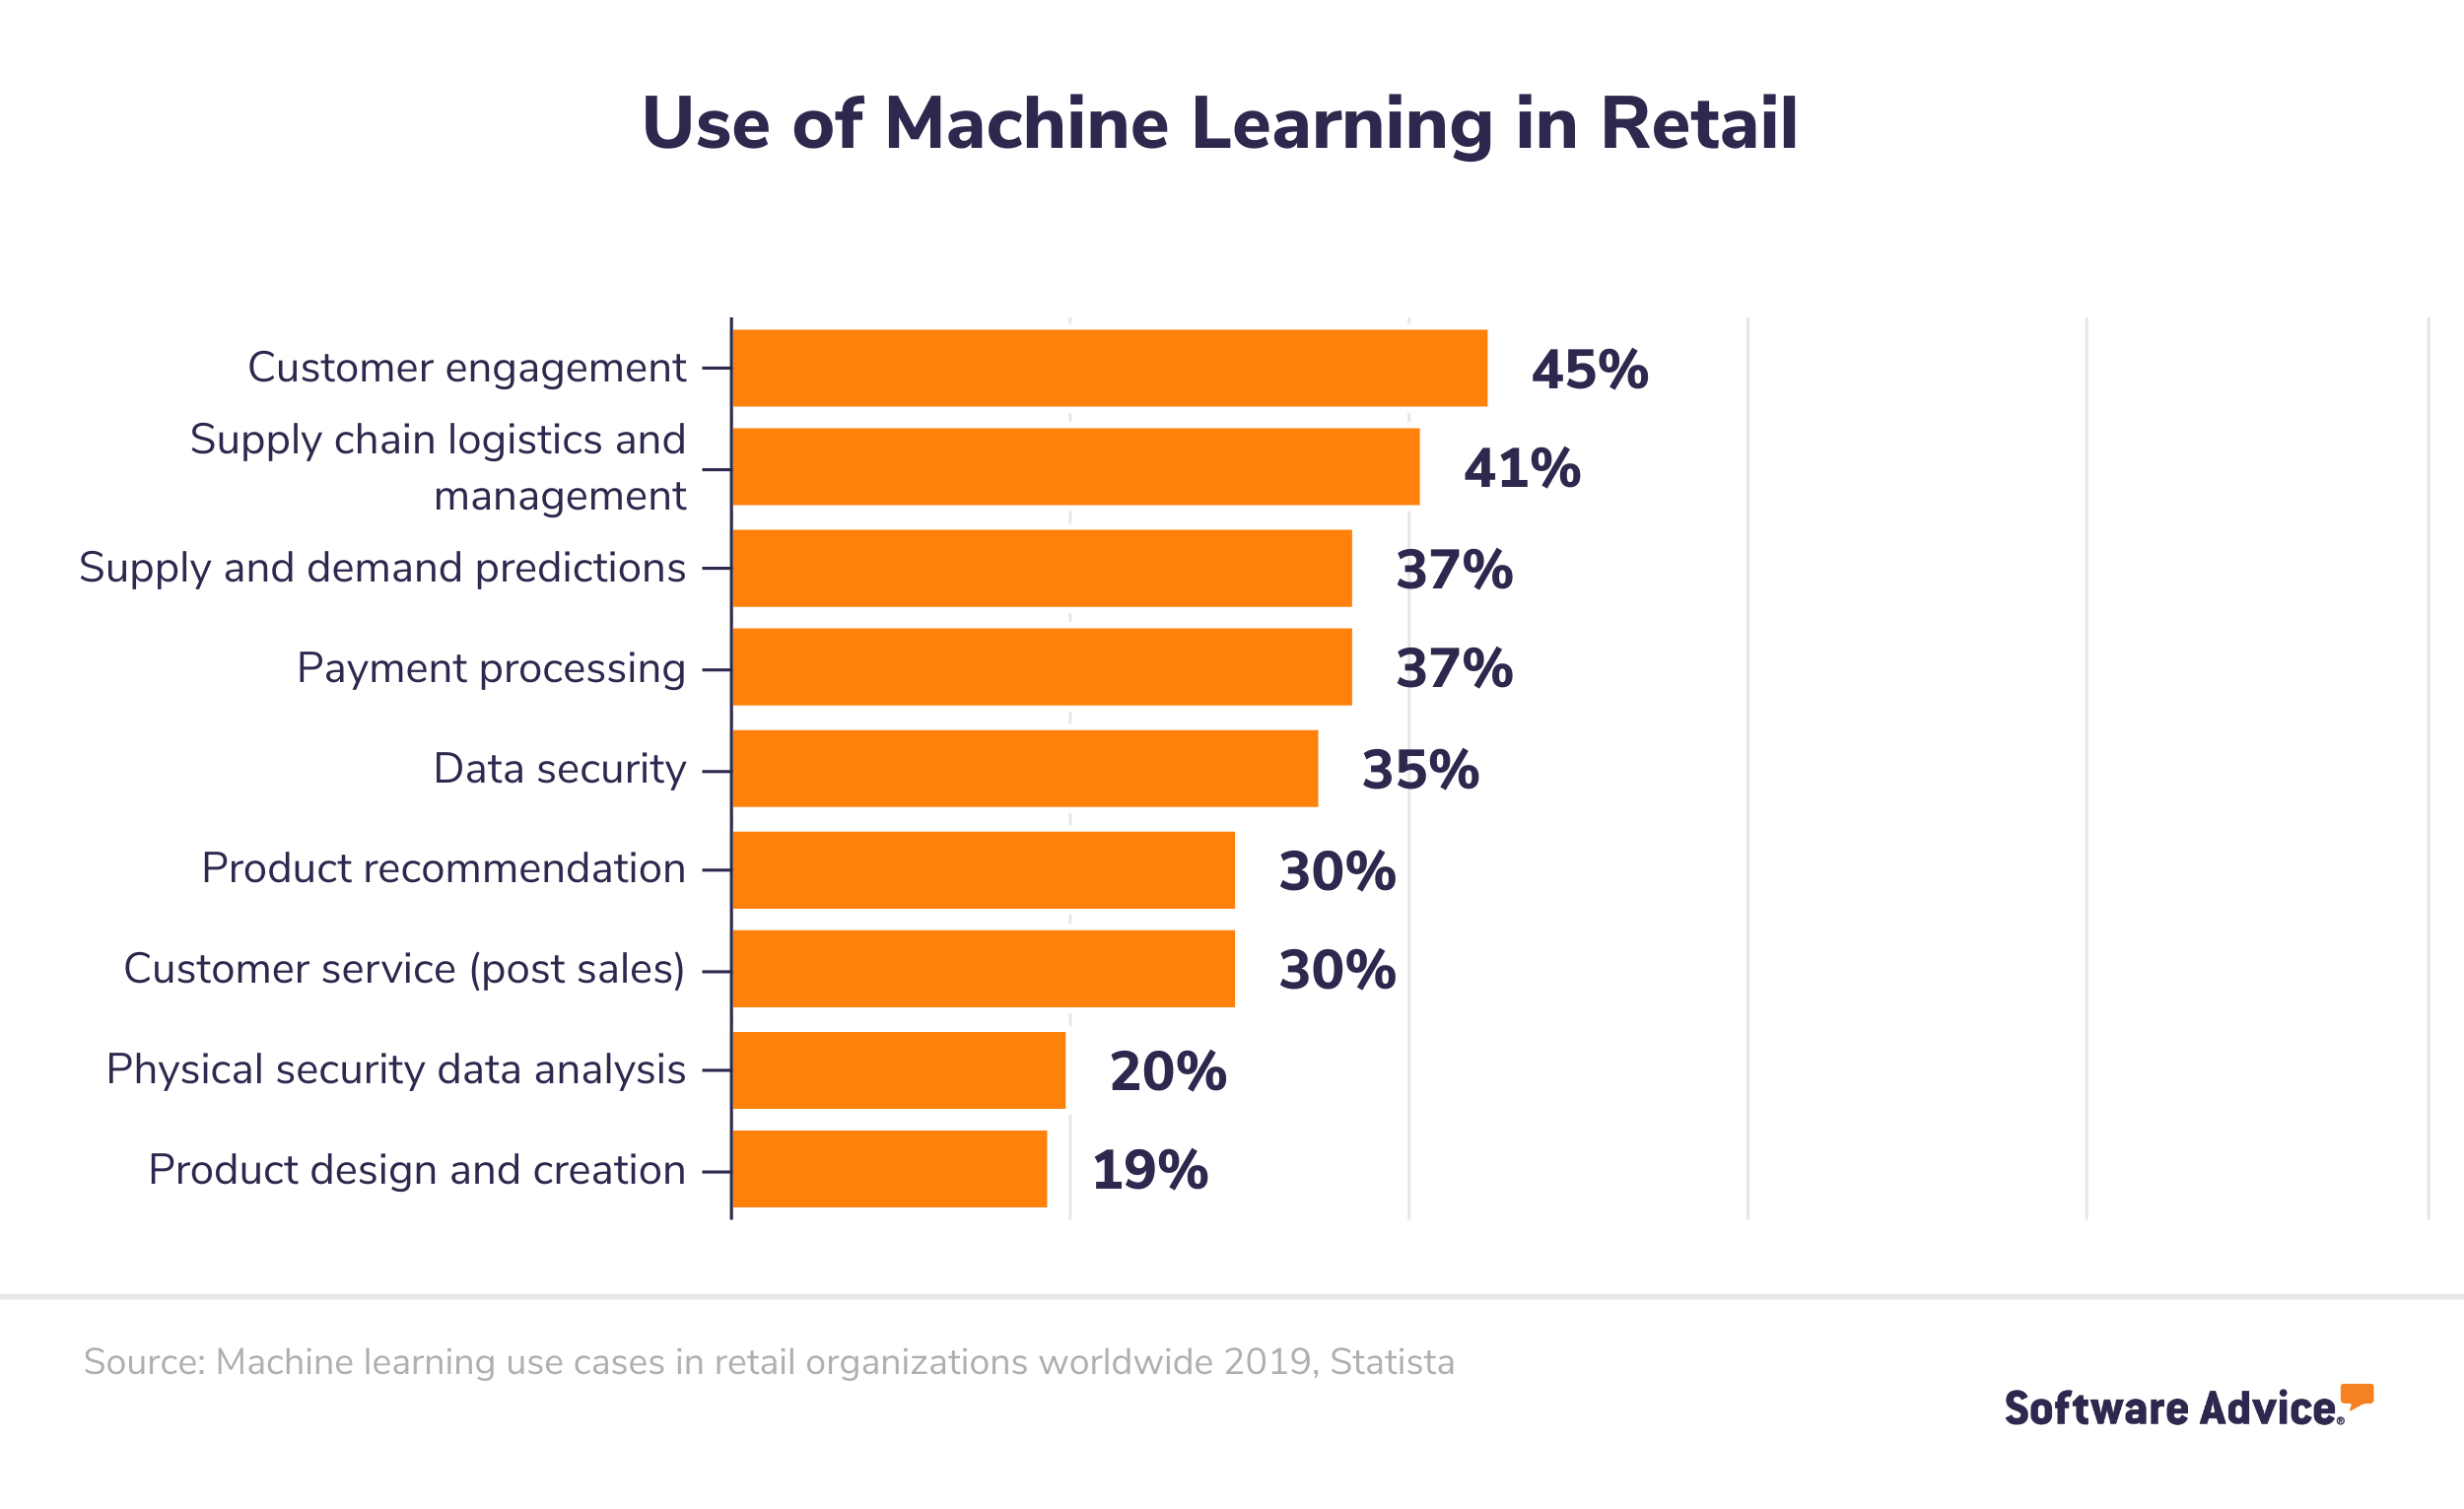 Applications and use cases of machine learning in retail